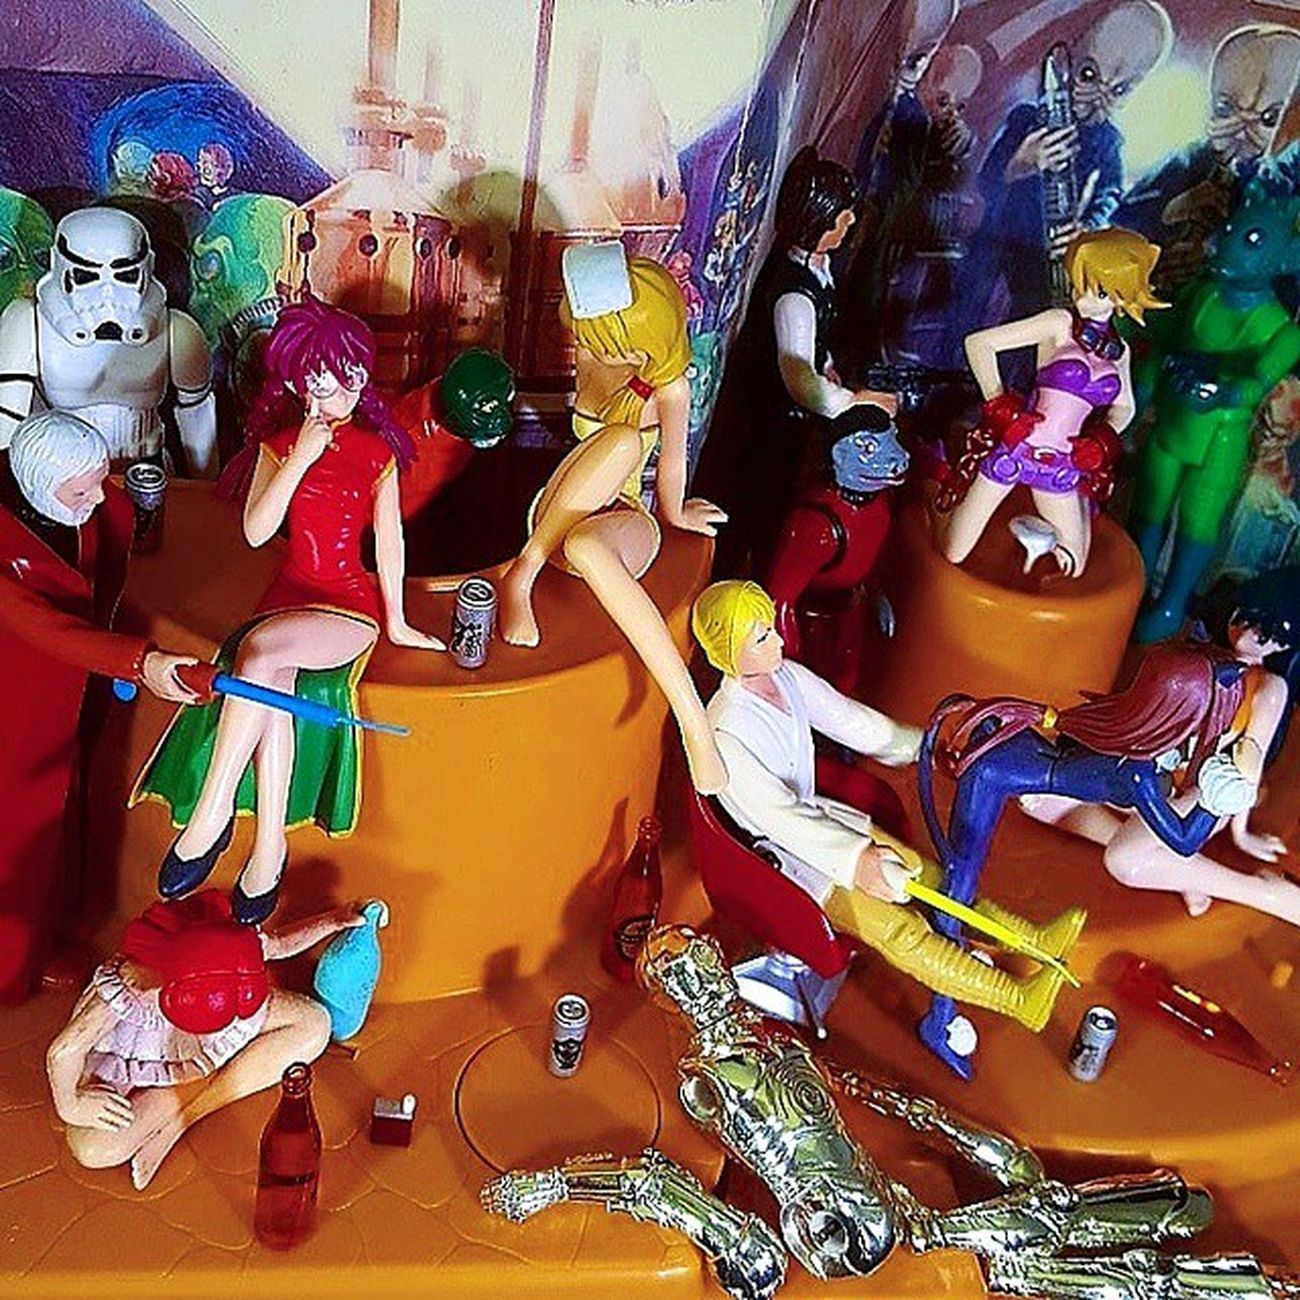 Anyway, looks like that ban on droids is still being enforced... (Smile & nod.) Starwars Starwarsfan Vintagetoys Vintagestarwars Anewhope Vintageactionfigures Droids Starwarsfigures Kenner MayTheForceBeWithyou Thefirstorder Theforce Starwarscantina Tatooine 80stoys 80schild Actionfigurephotography Actionfigures Toycrewbuddies Toyphotography Animefigure Retrotoys Gashapon Japanesetoys Toycollector toycollection toypics lfl